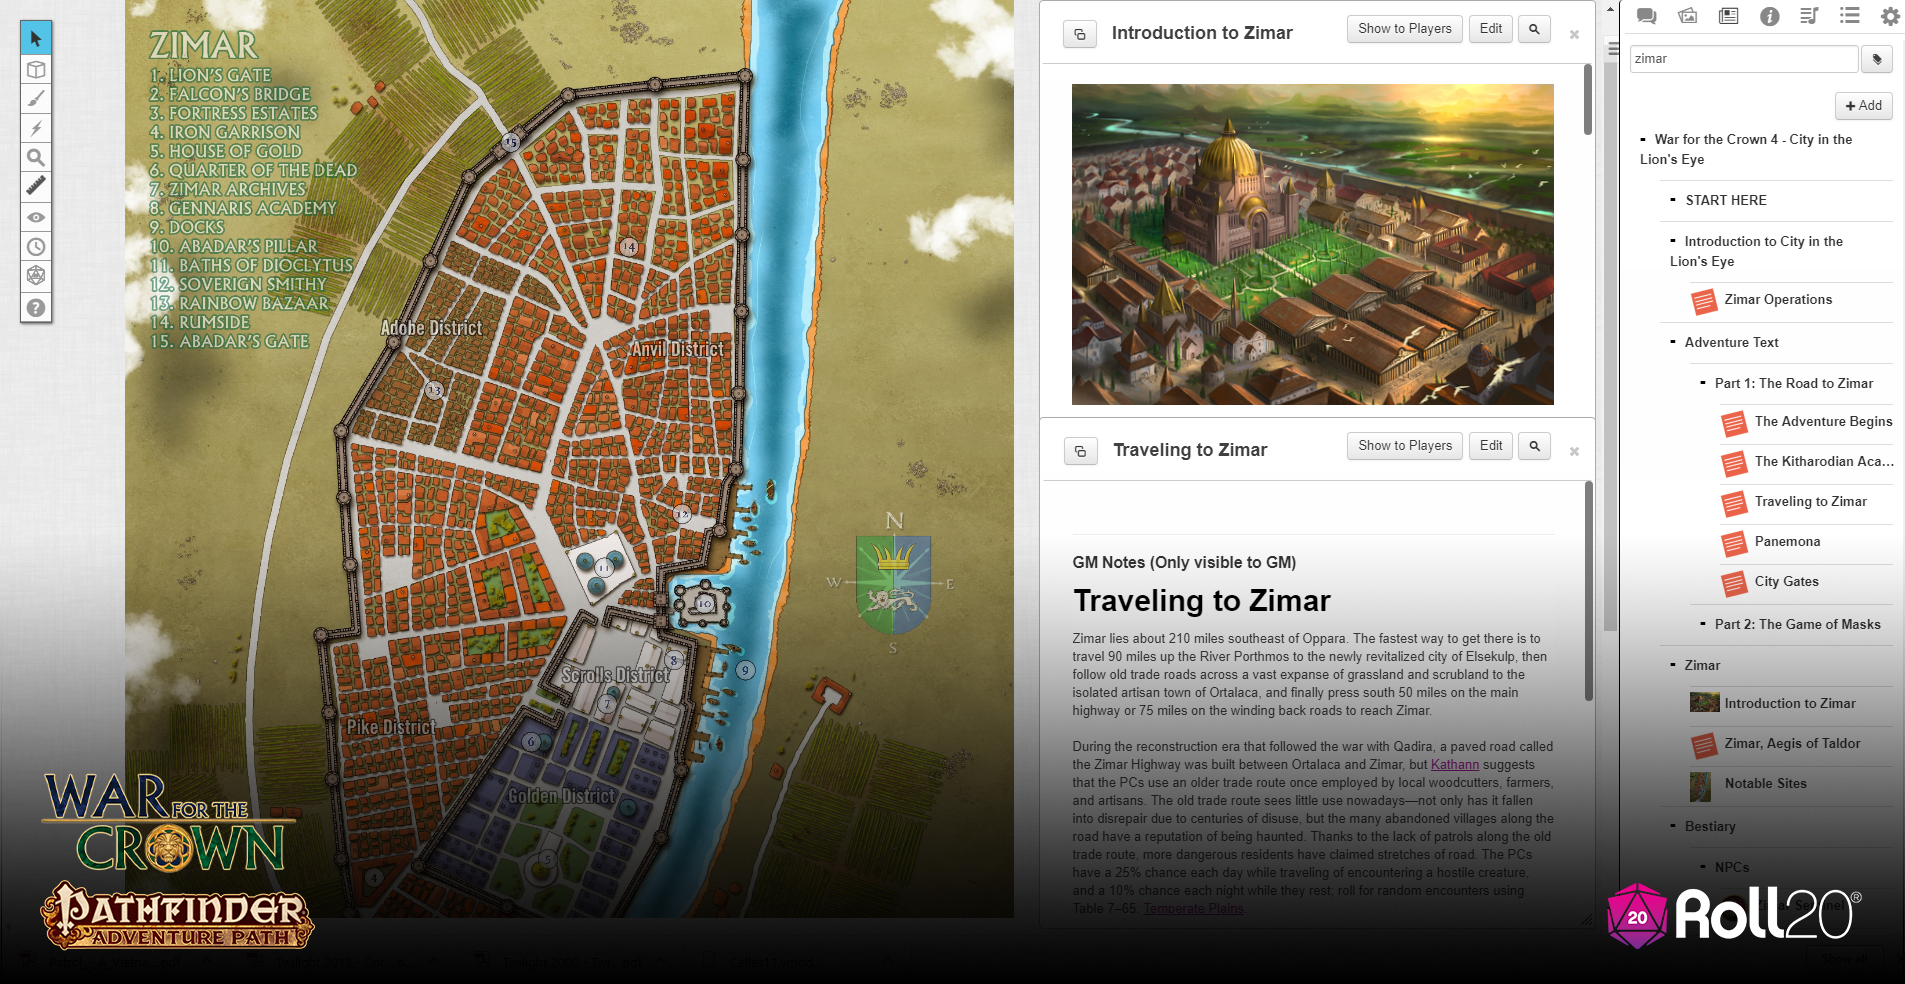 City in the Lion's Eye is dived into three parts. Part 1 is simply getting  the PCs to Zimar, with a stop at the Lion Blades training academy.